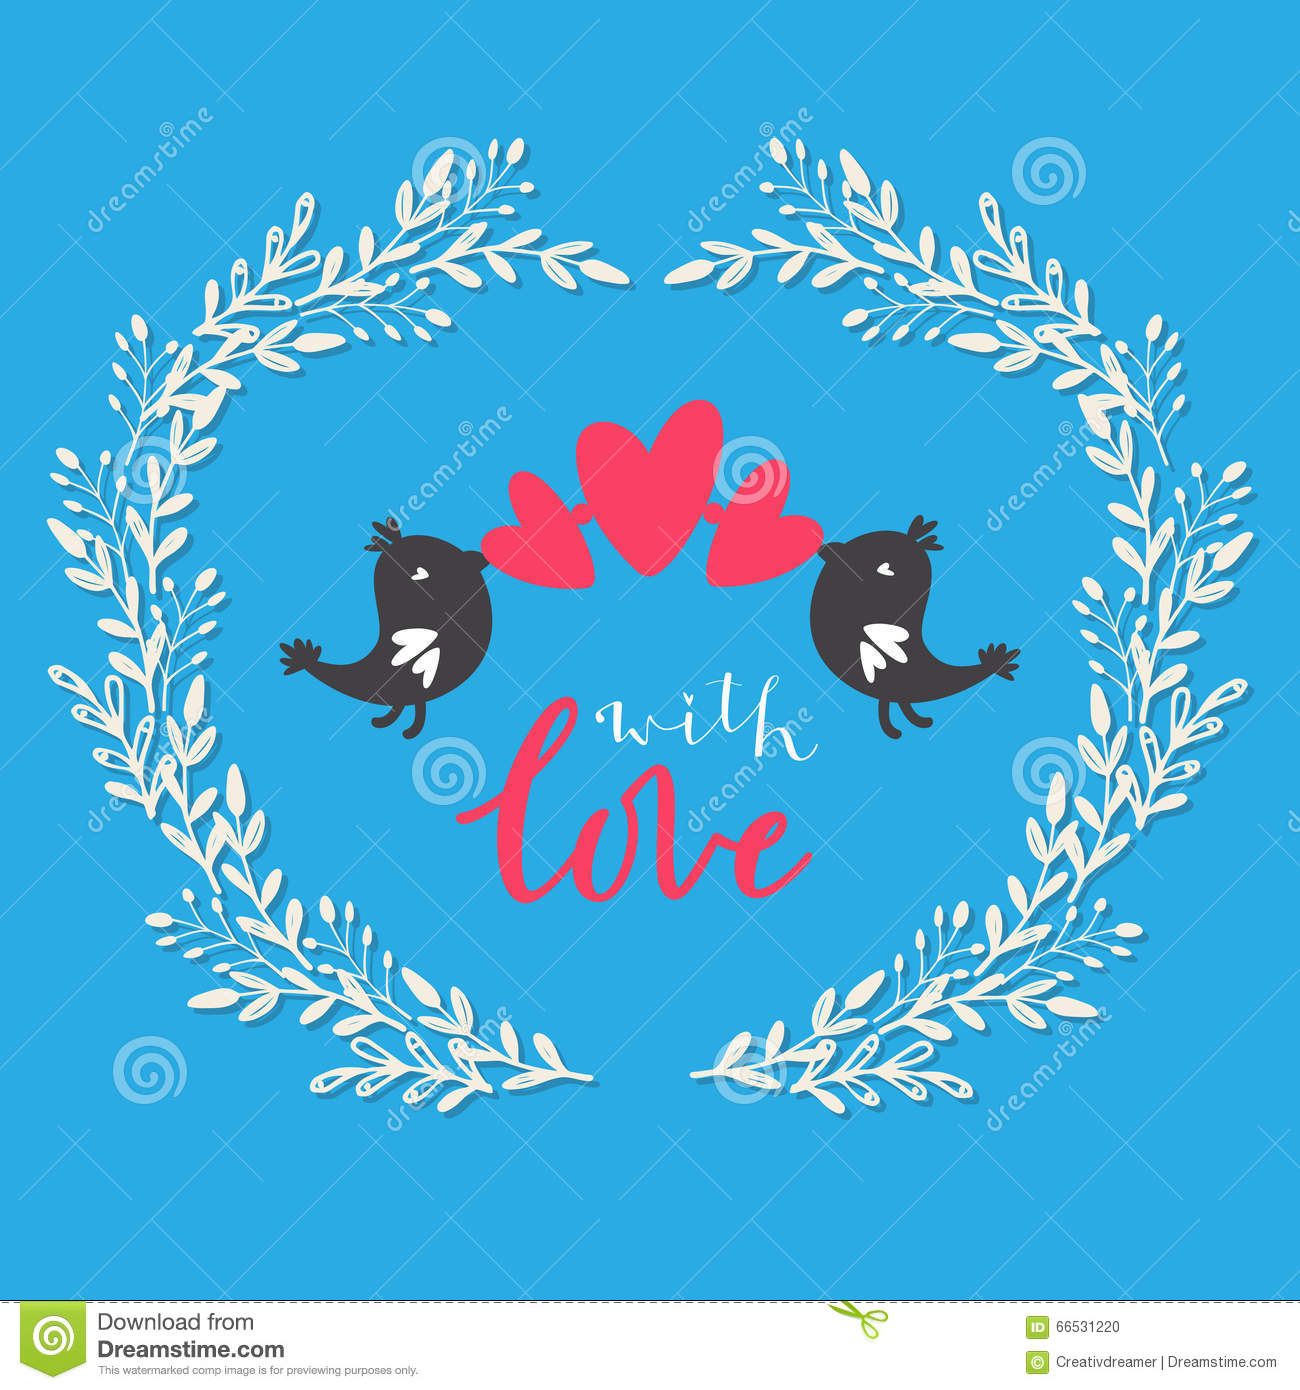 Greeting Card With Birds Hearts And With Love Message 1 Vector